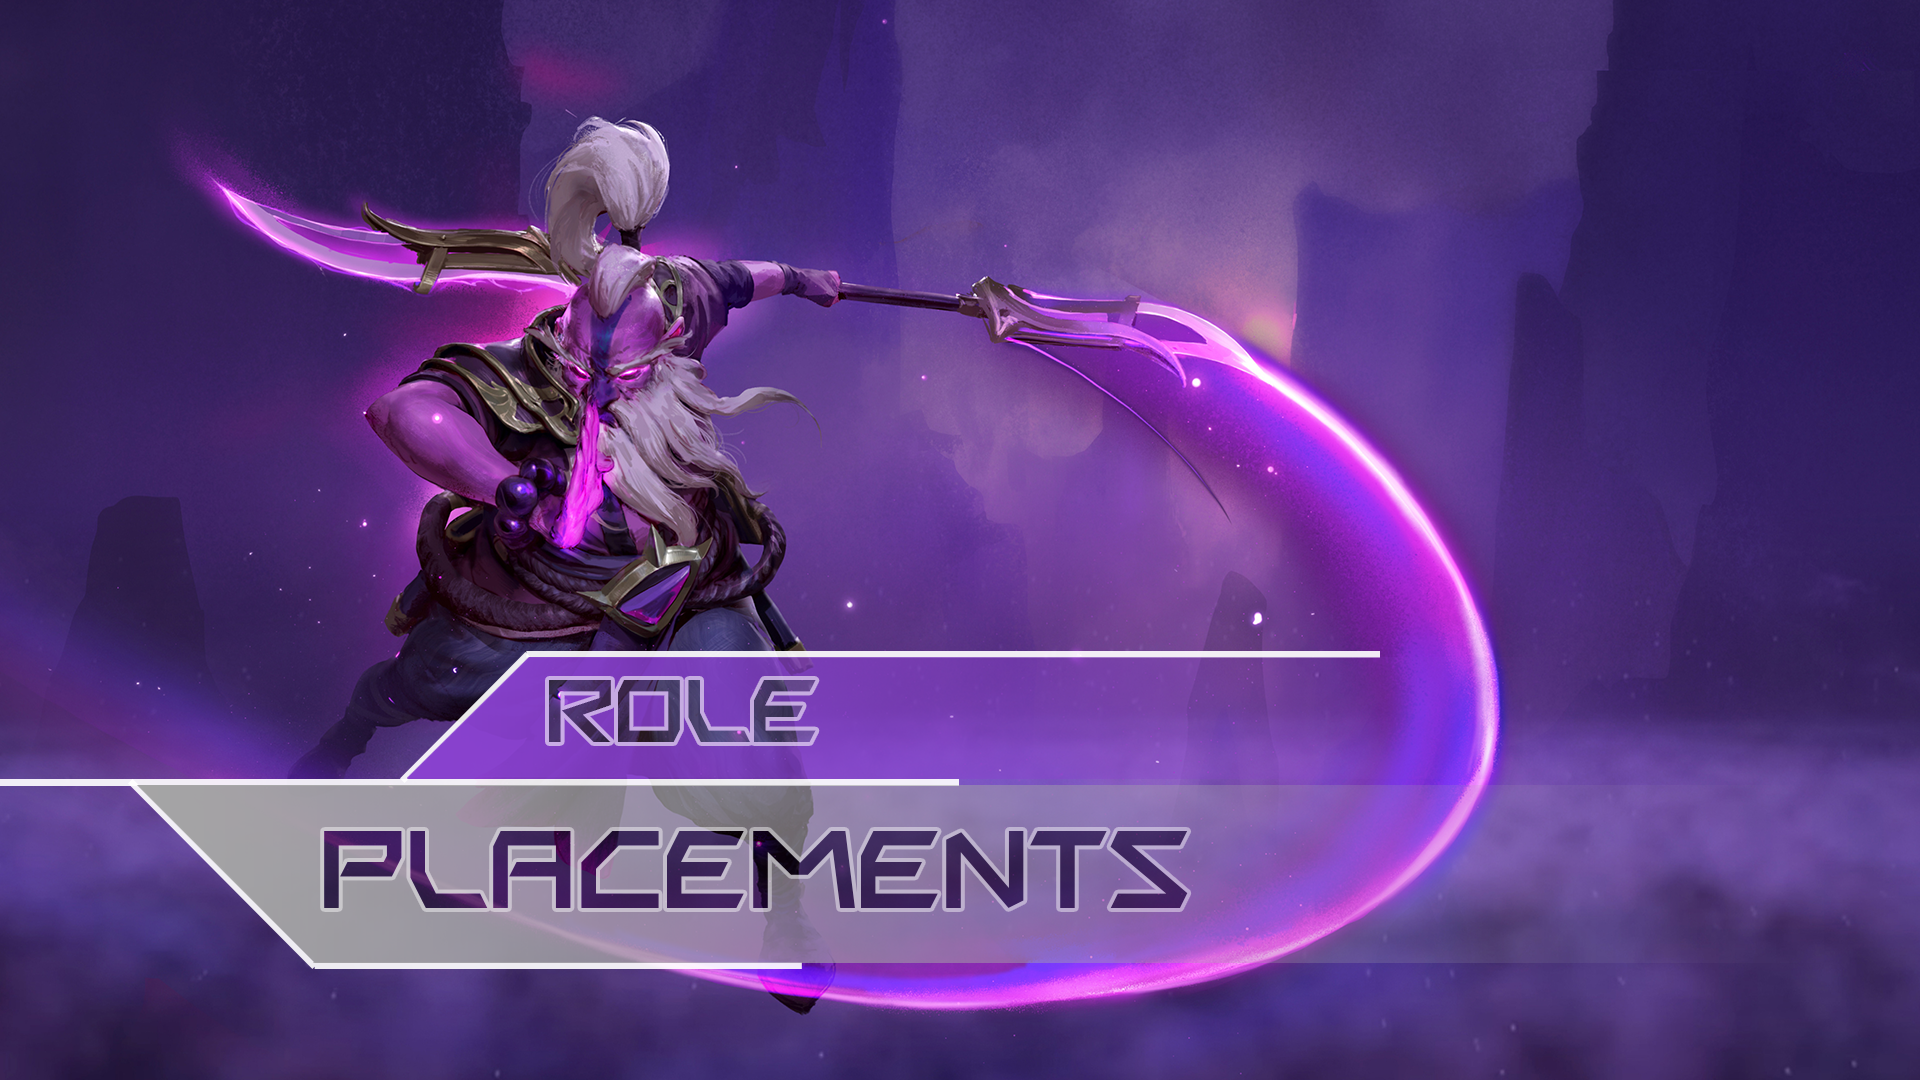 PLACEMENTS GAMES (LAST SEASON IMMORTAL) GBD - e2p.com